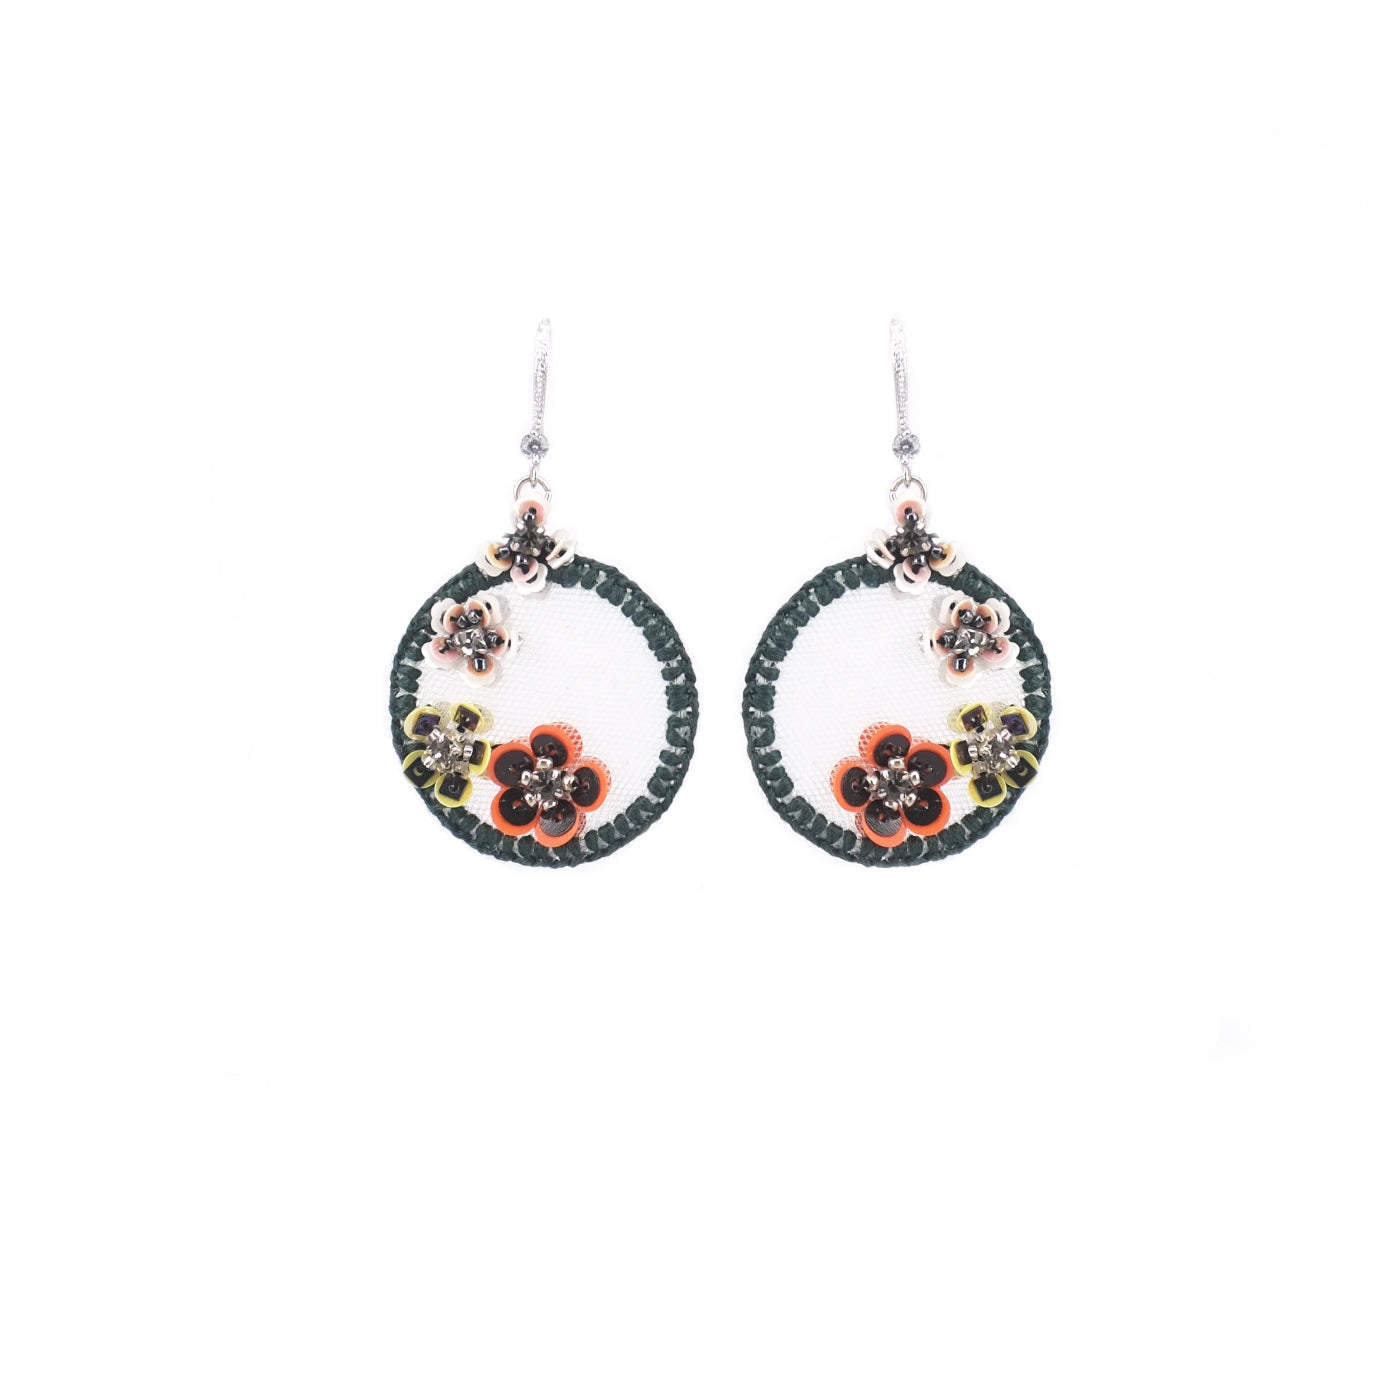 Fiesta Floral Mini Embroidery Earrings (Limited) - ADA PAT DESIGN